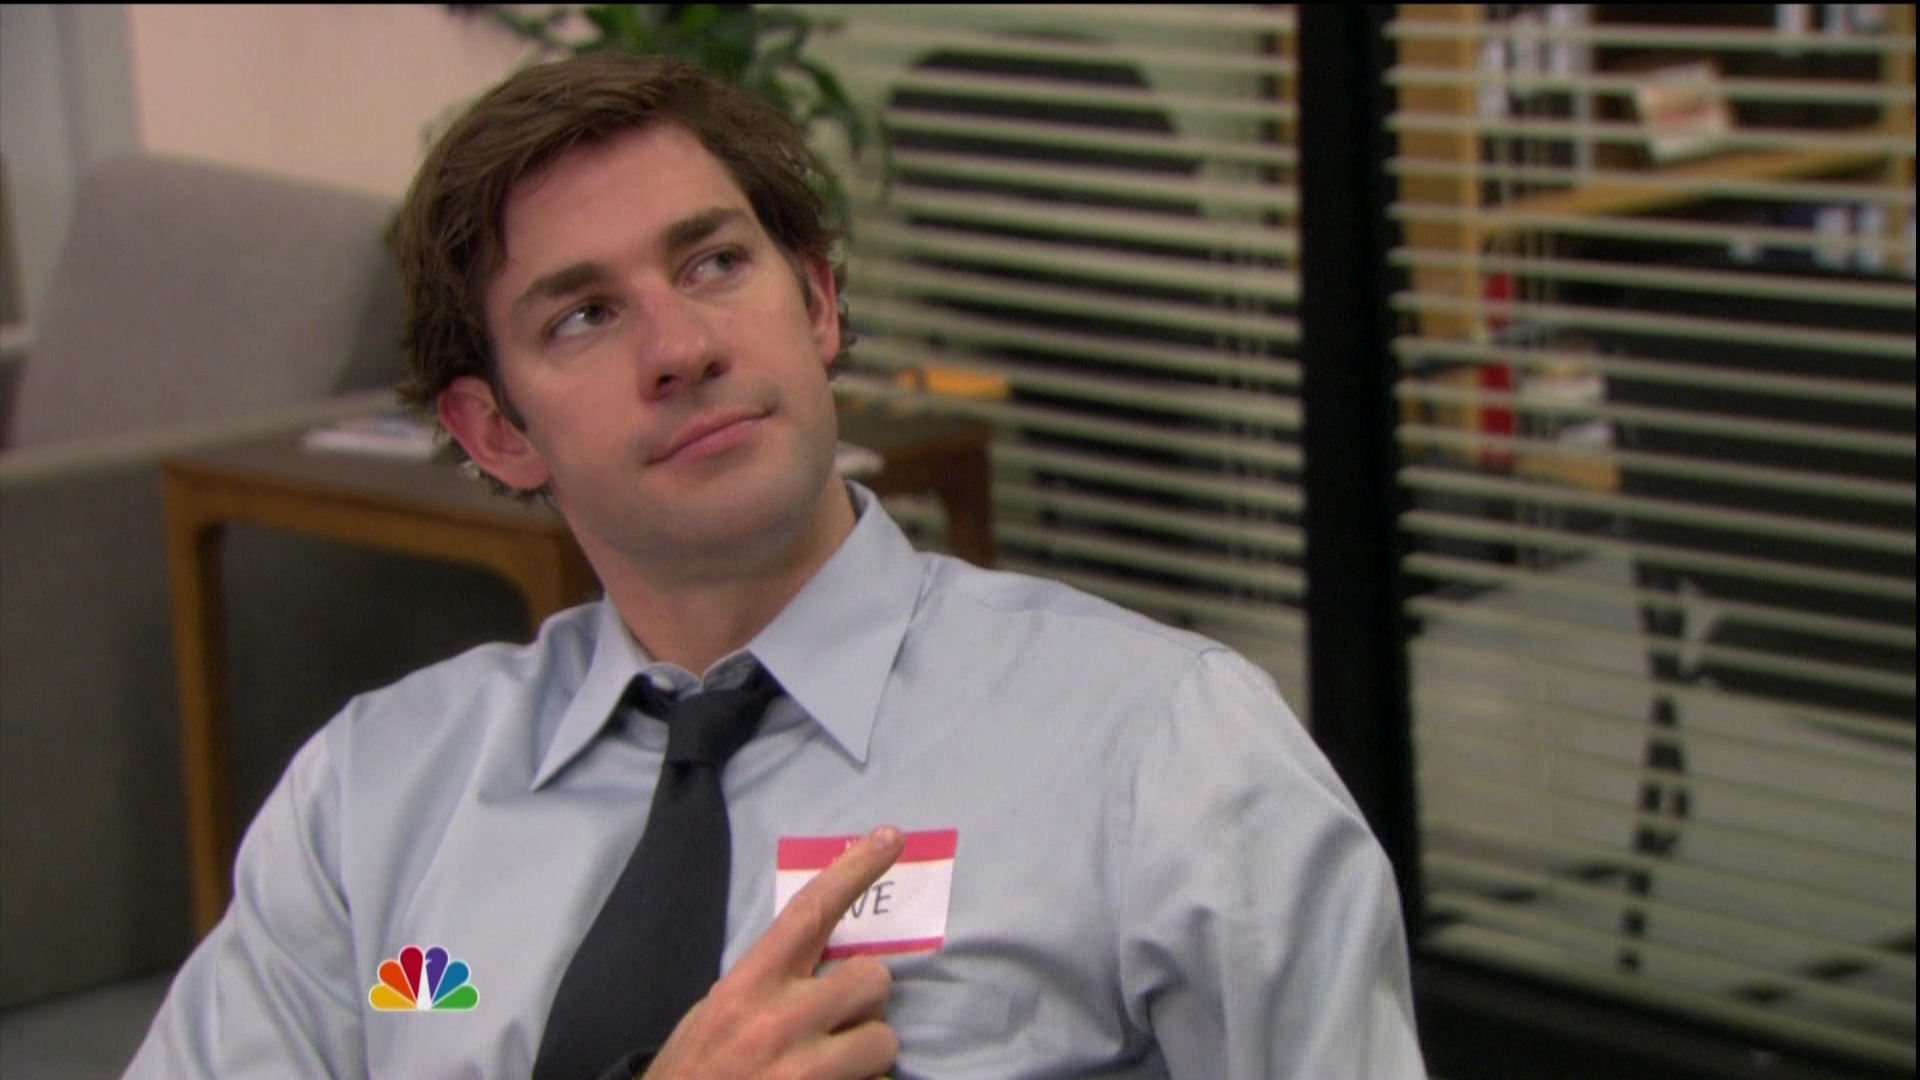 The Office (US) Wallpapers, Pictures, Images